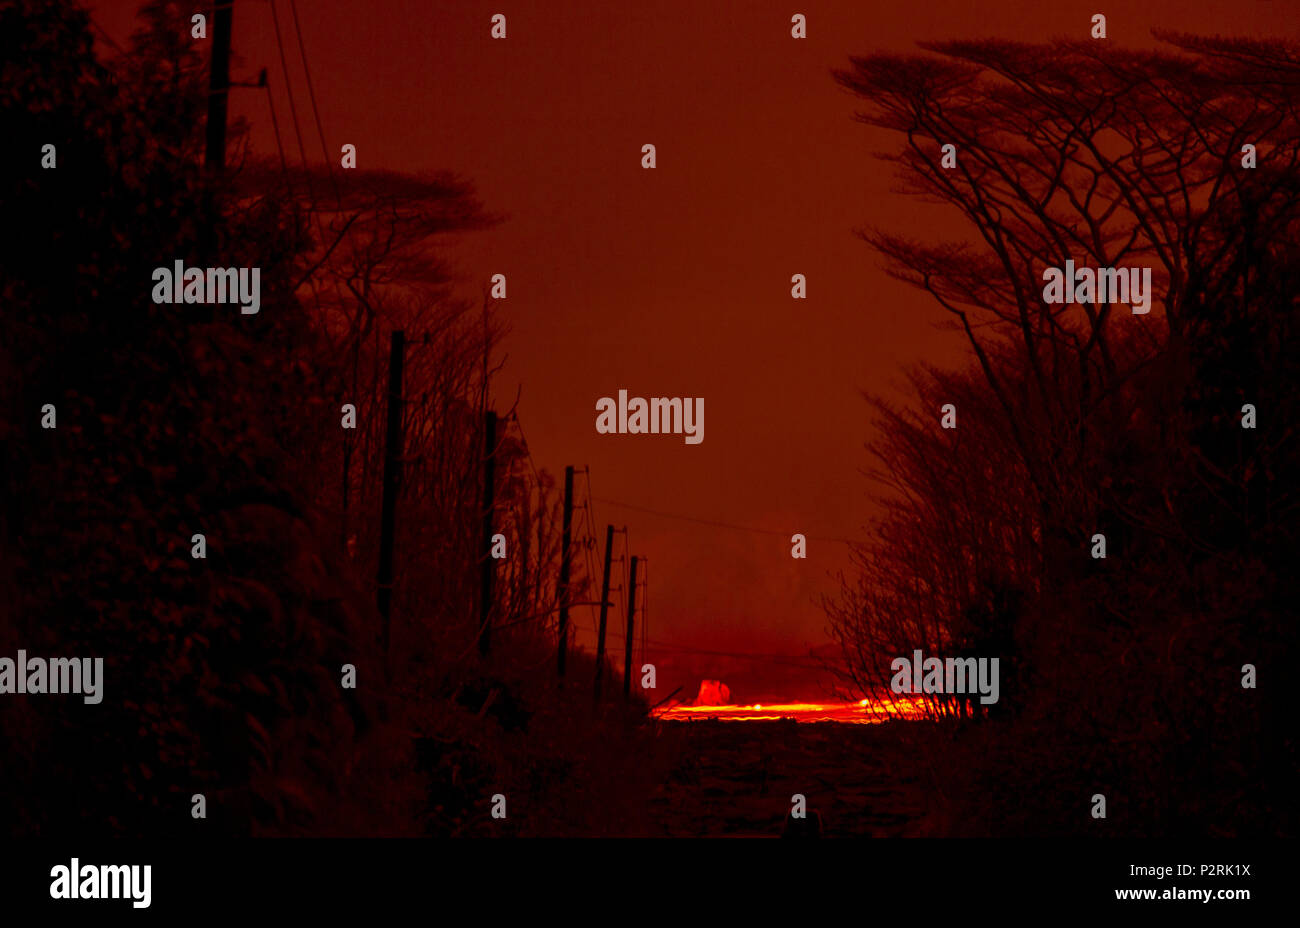 Pahoa, Hawaii, USA. 9th June, 2018. A river of molten lava moves past a partially blocked road in Leilani Estates as the Kilauea Volcano lower east rift zone continues its eruption on Wednesday, June 6, 2018, in Pahoa, Hawaii. Credit: L.E. Baskow/ZUMA Wire/Alamy Live News - Stock Image